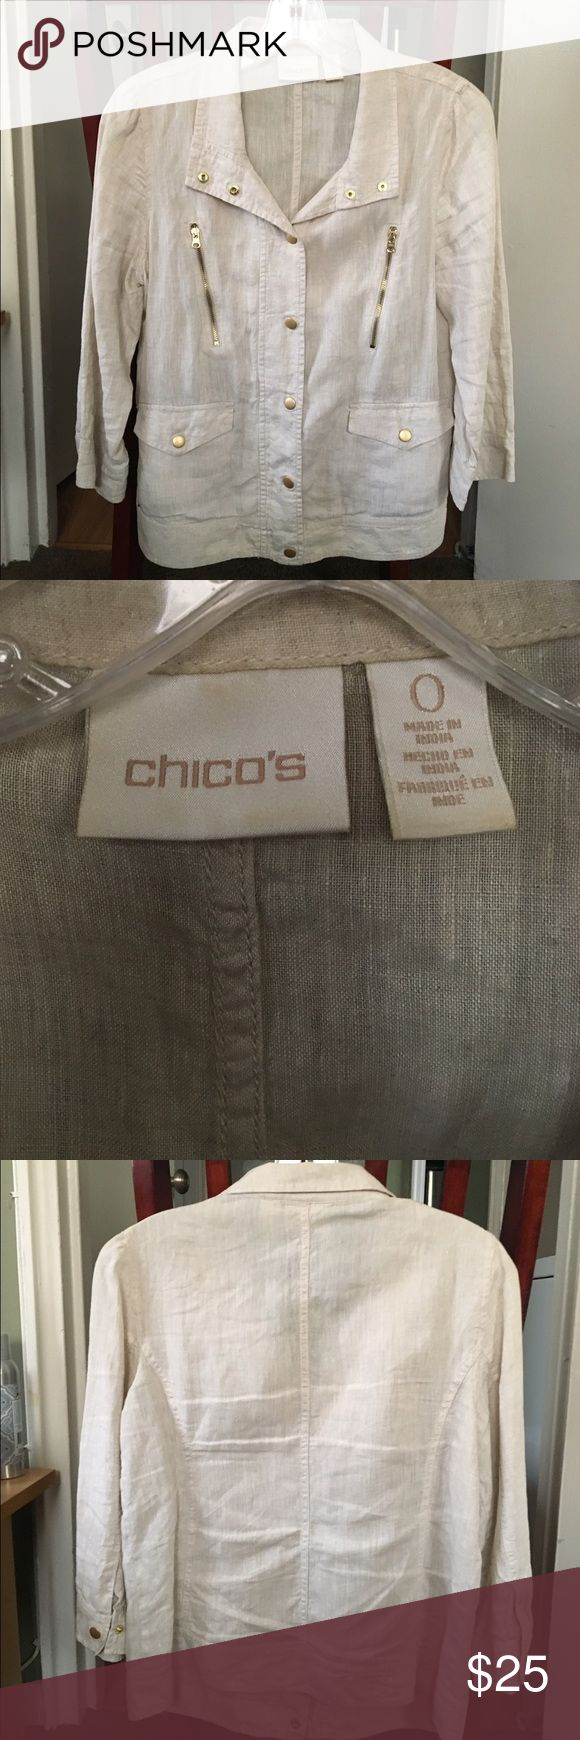 SAFARI KHAKI W GOLD HARDWARE CHICOS JACKET/BLOUSE Easy breezy linen in khaki great looking Chicos jacket. Can be worn open as a jacket or buttoned up as a blouse. Gold buttons and hardware make this a casual, comfortable yet classy look. Will go with anything as it is so neutral! It is a 0 which is a small however it runs big more like a medium! Chico's Jackets & Coats